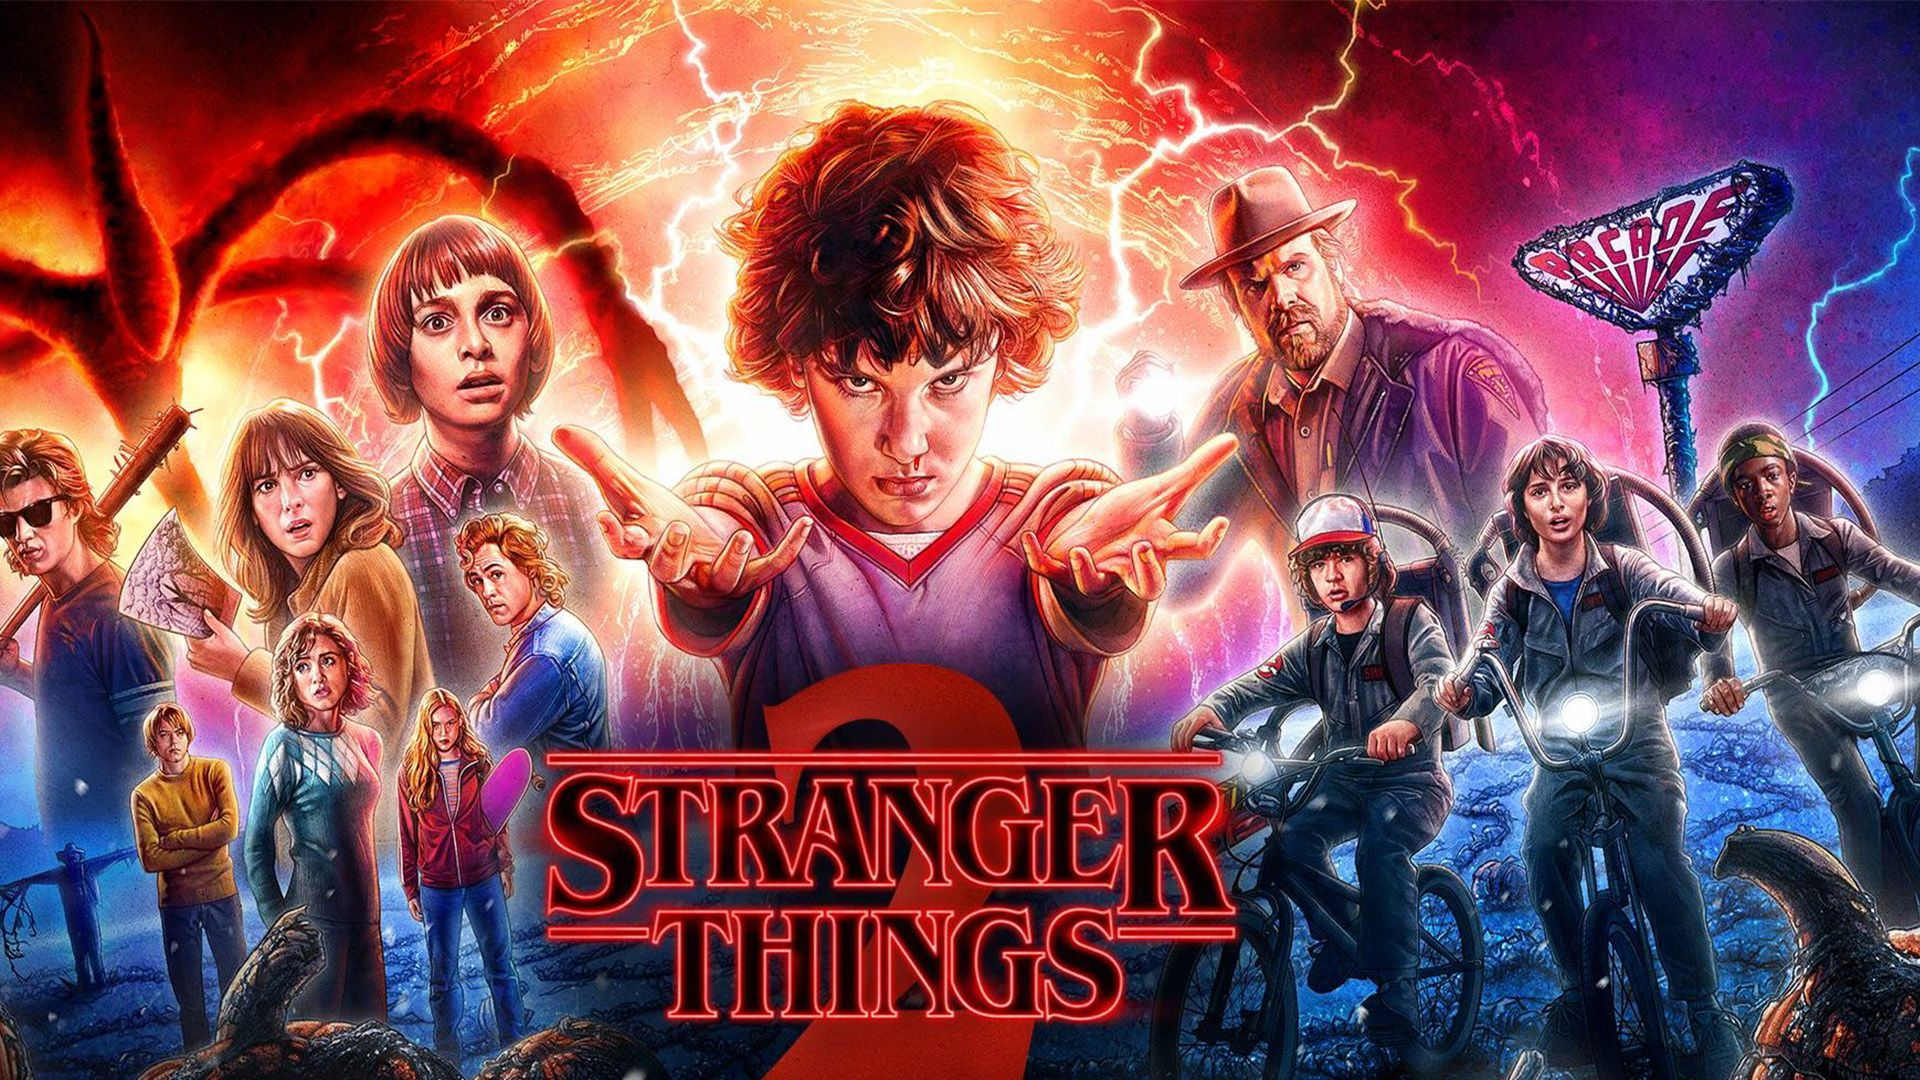 20 Must Watch Netflix Shows List: All Time Hits | Stranger things ...